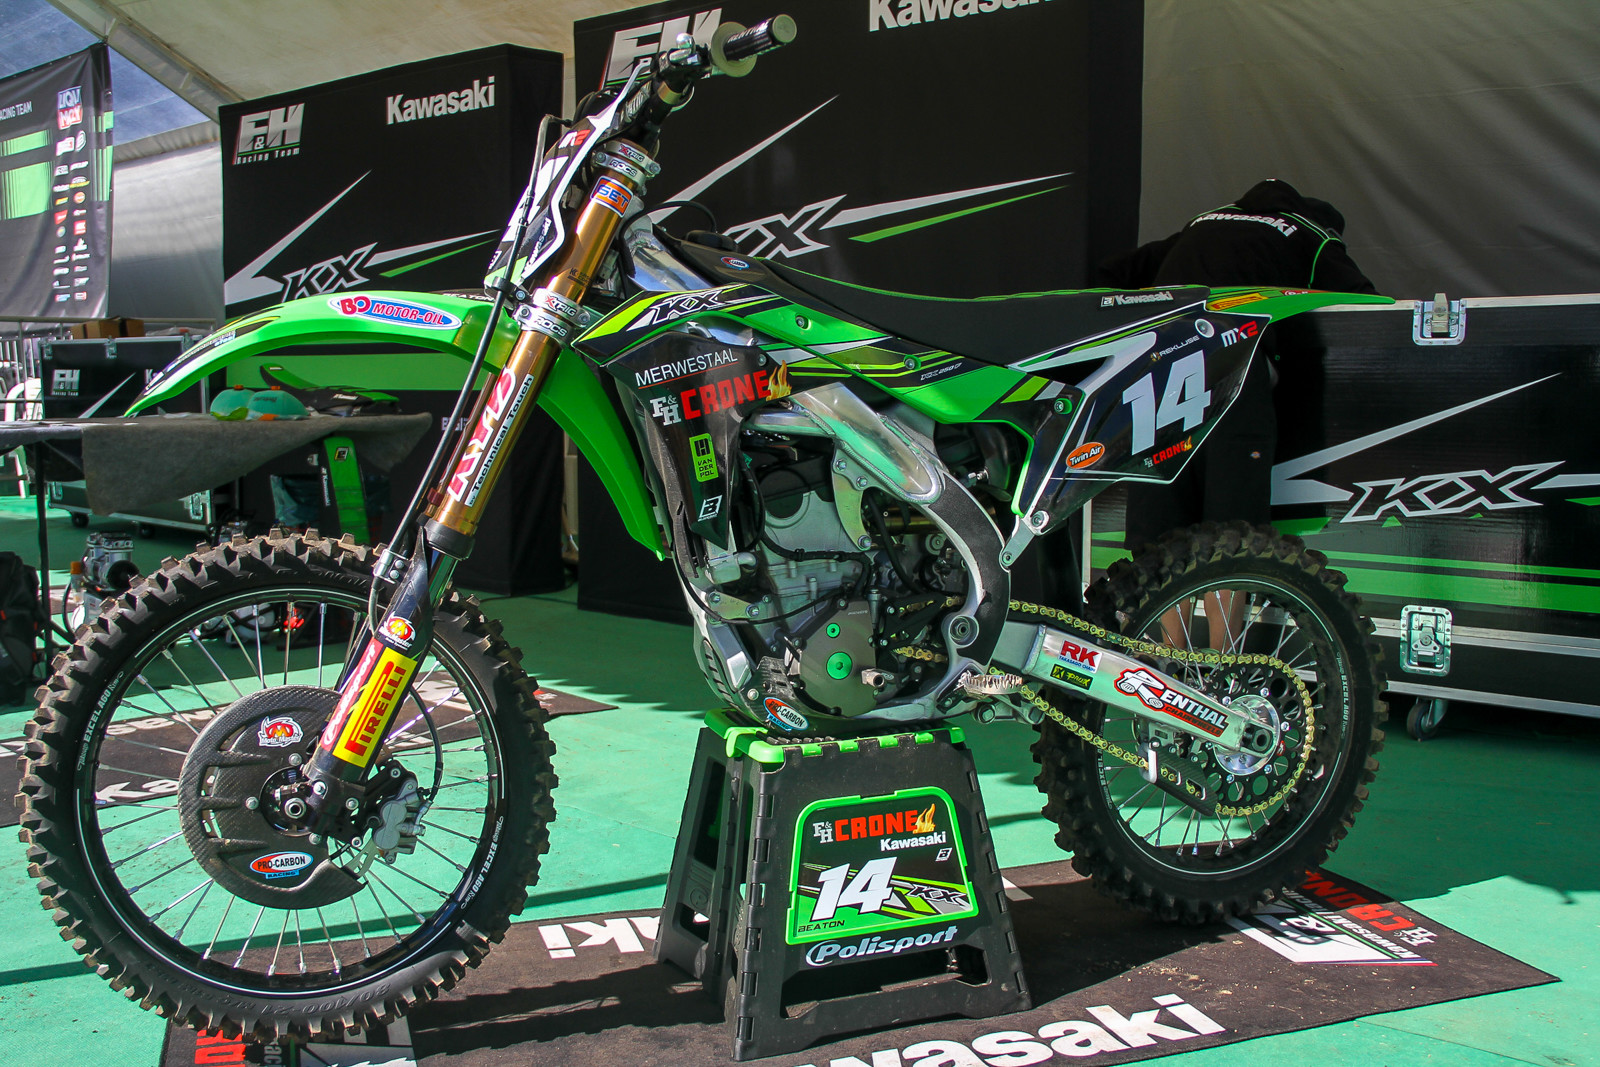 The prior CLS Kawasaki 250 team has bowed out and their support from Kawasaki and Monster was transferred over to F&H Kawasaki for 2018. The new team has a little bit different look to its predecessor, with KYB suspension and HGS exhausts to start.